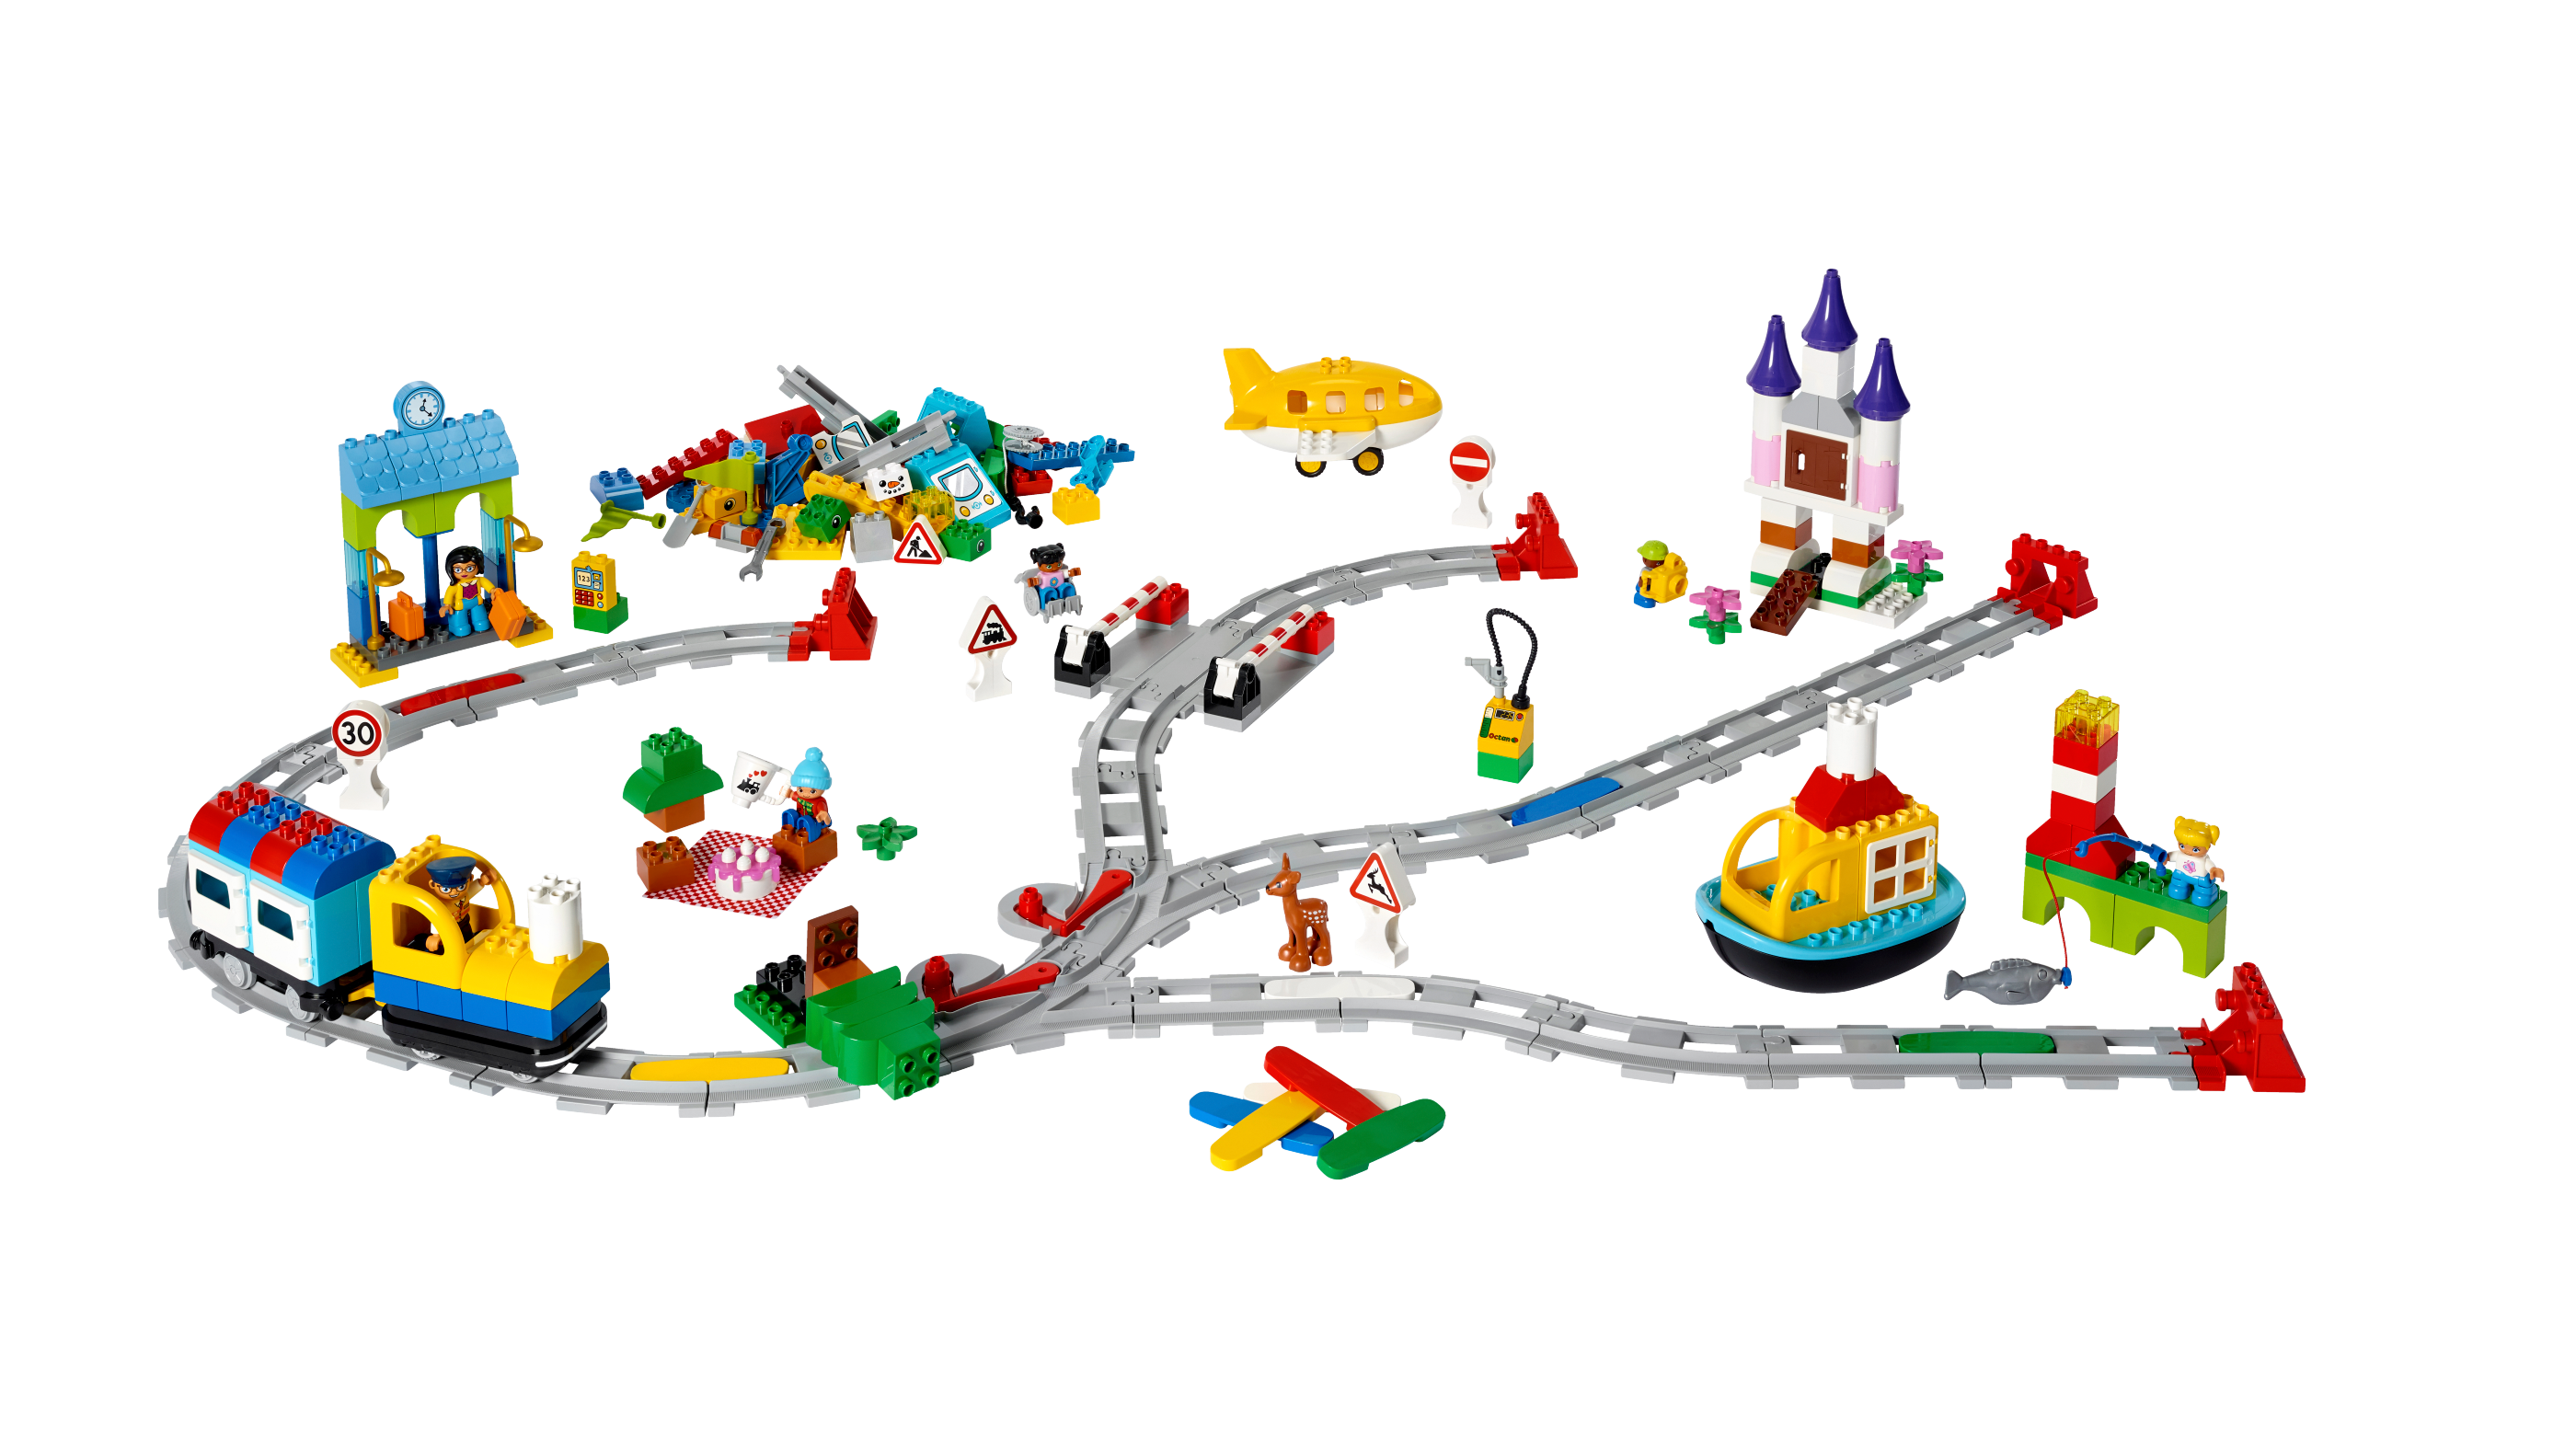 Coding Express by LEGO Education, product 45025